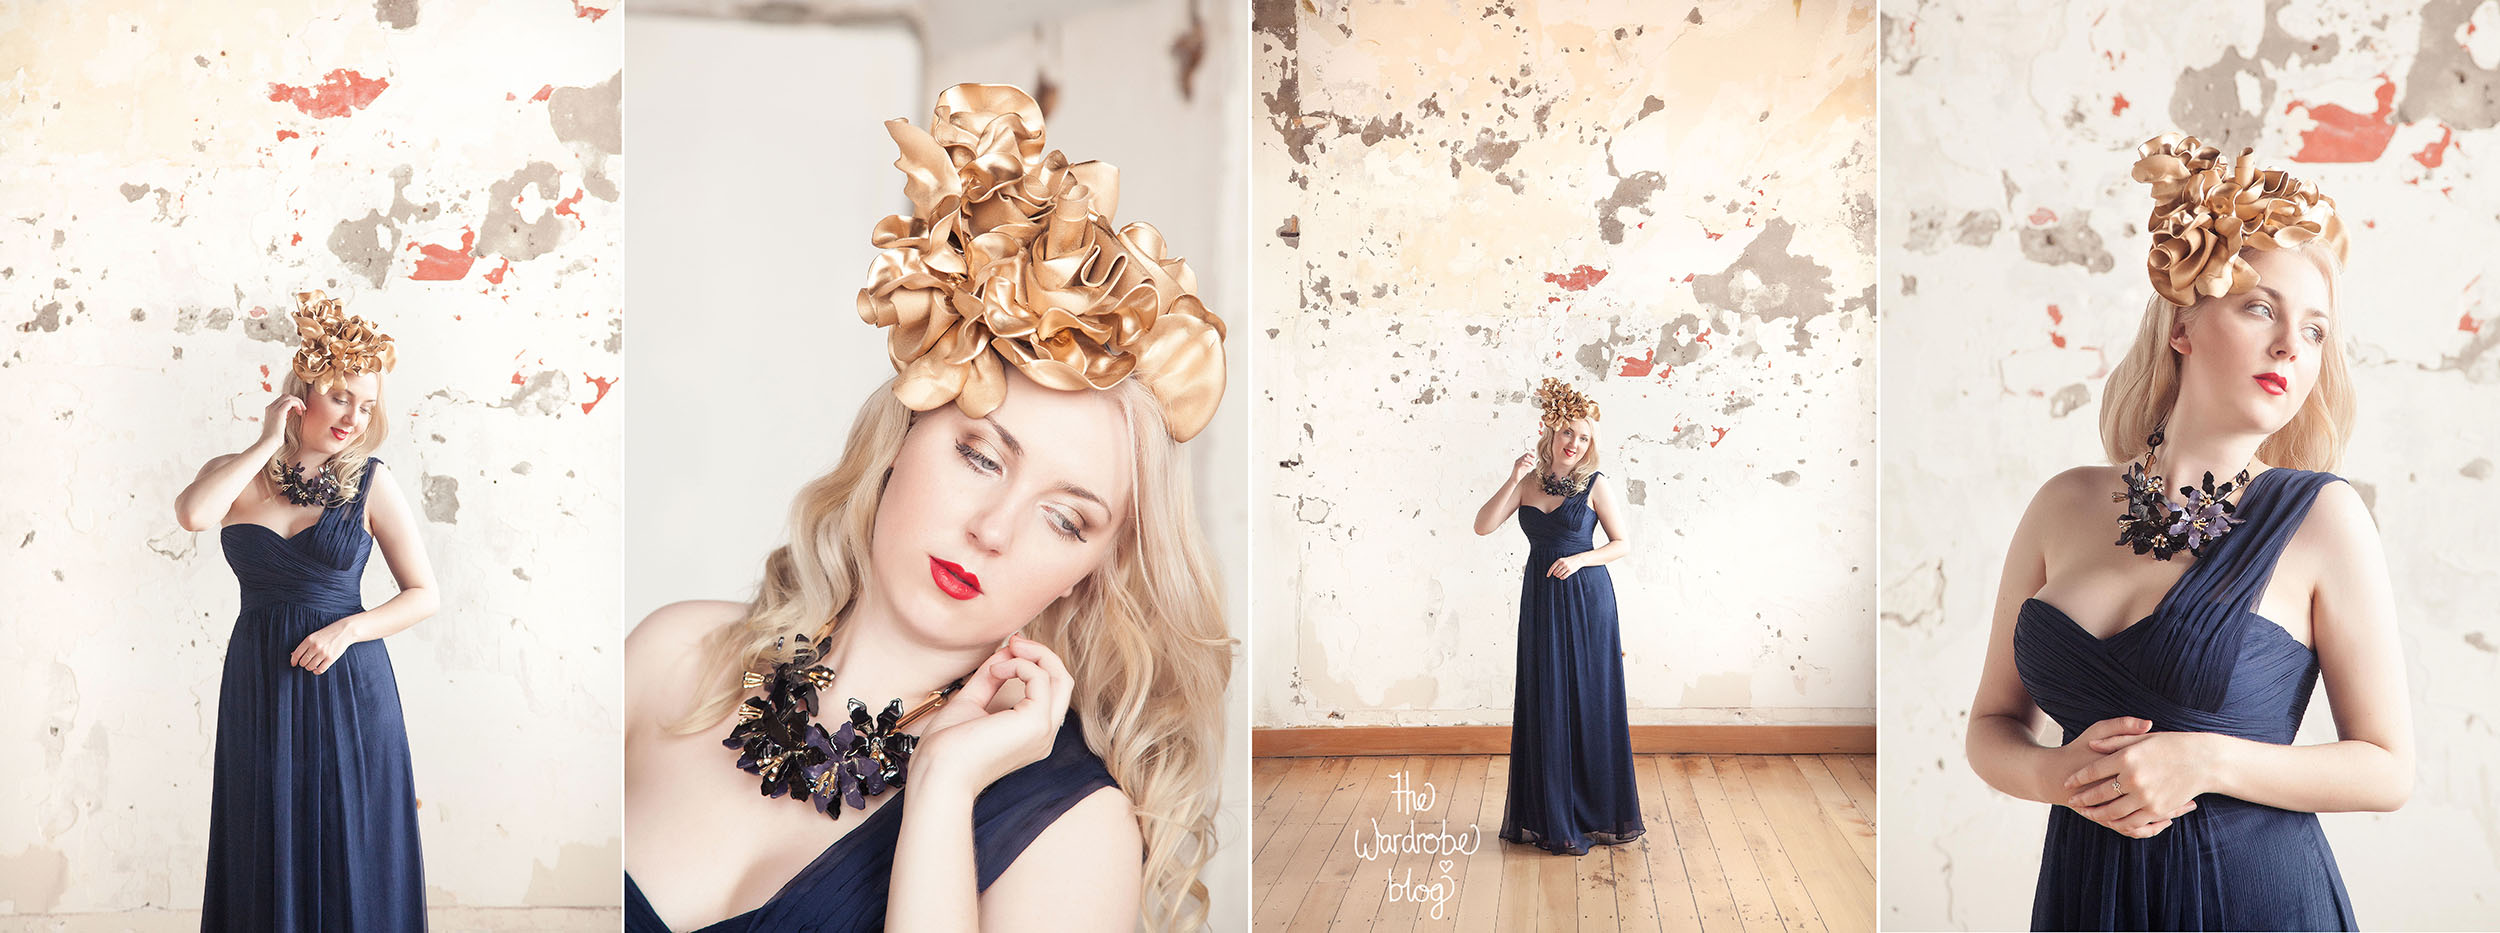 Gown from Hera Bridal, Necklace + Headpiece from Claire Hahn.